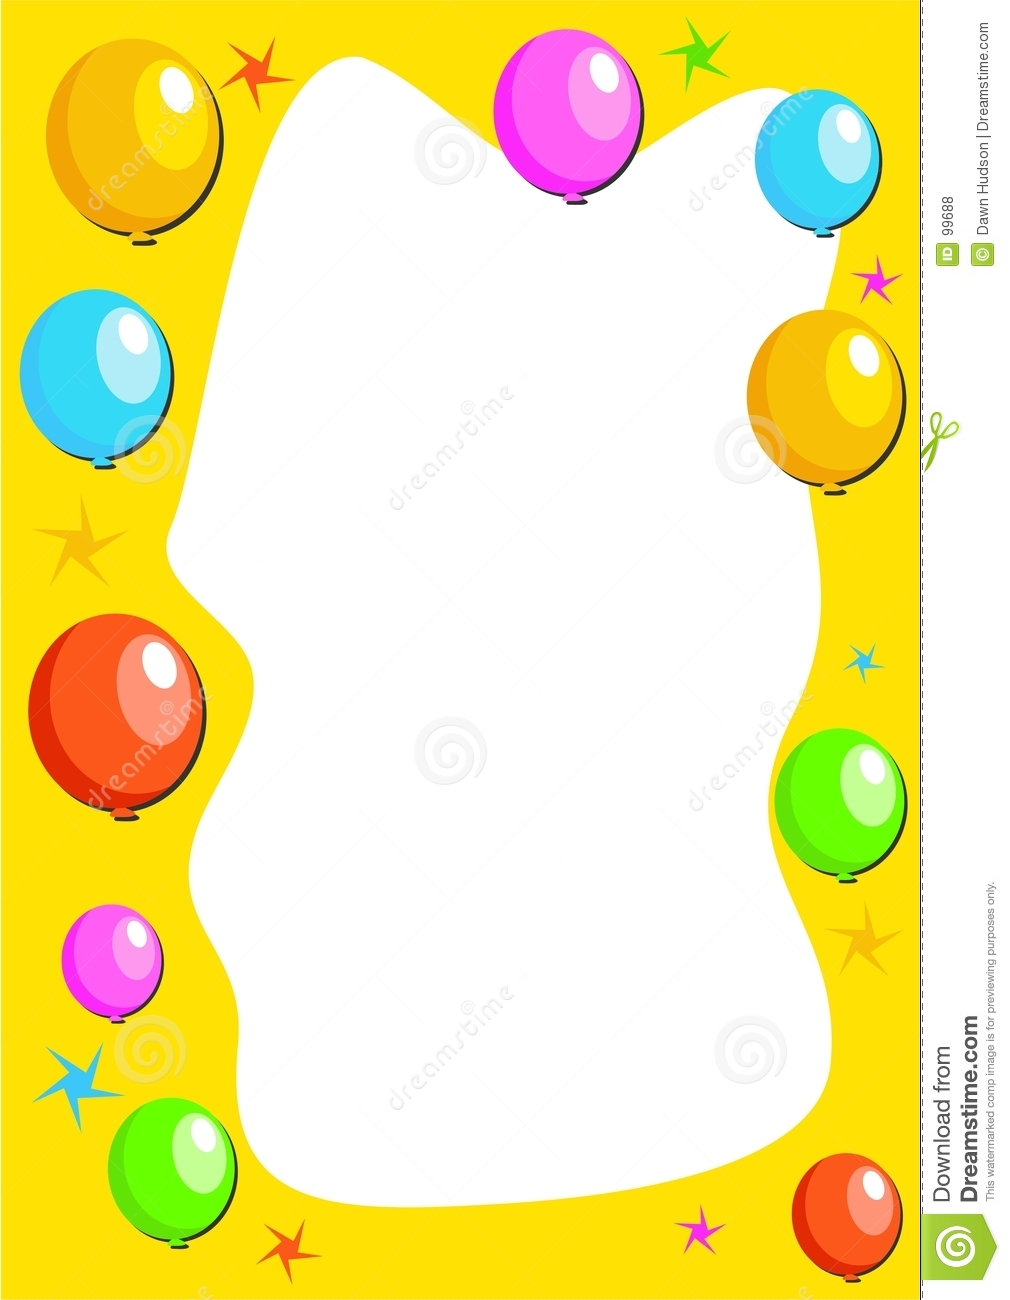 birthday party border clip art ; birthday-party-clip-art-borders-balloon-border-99688